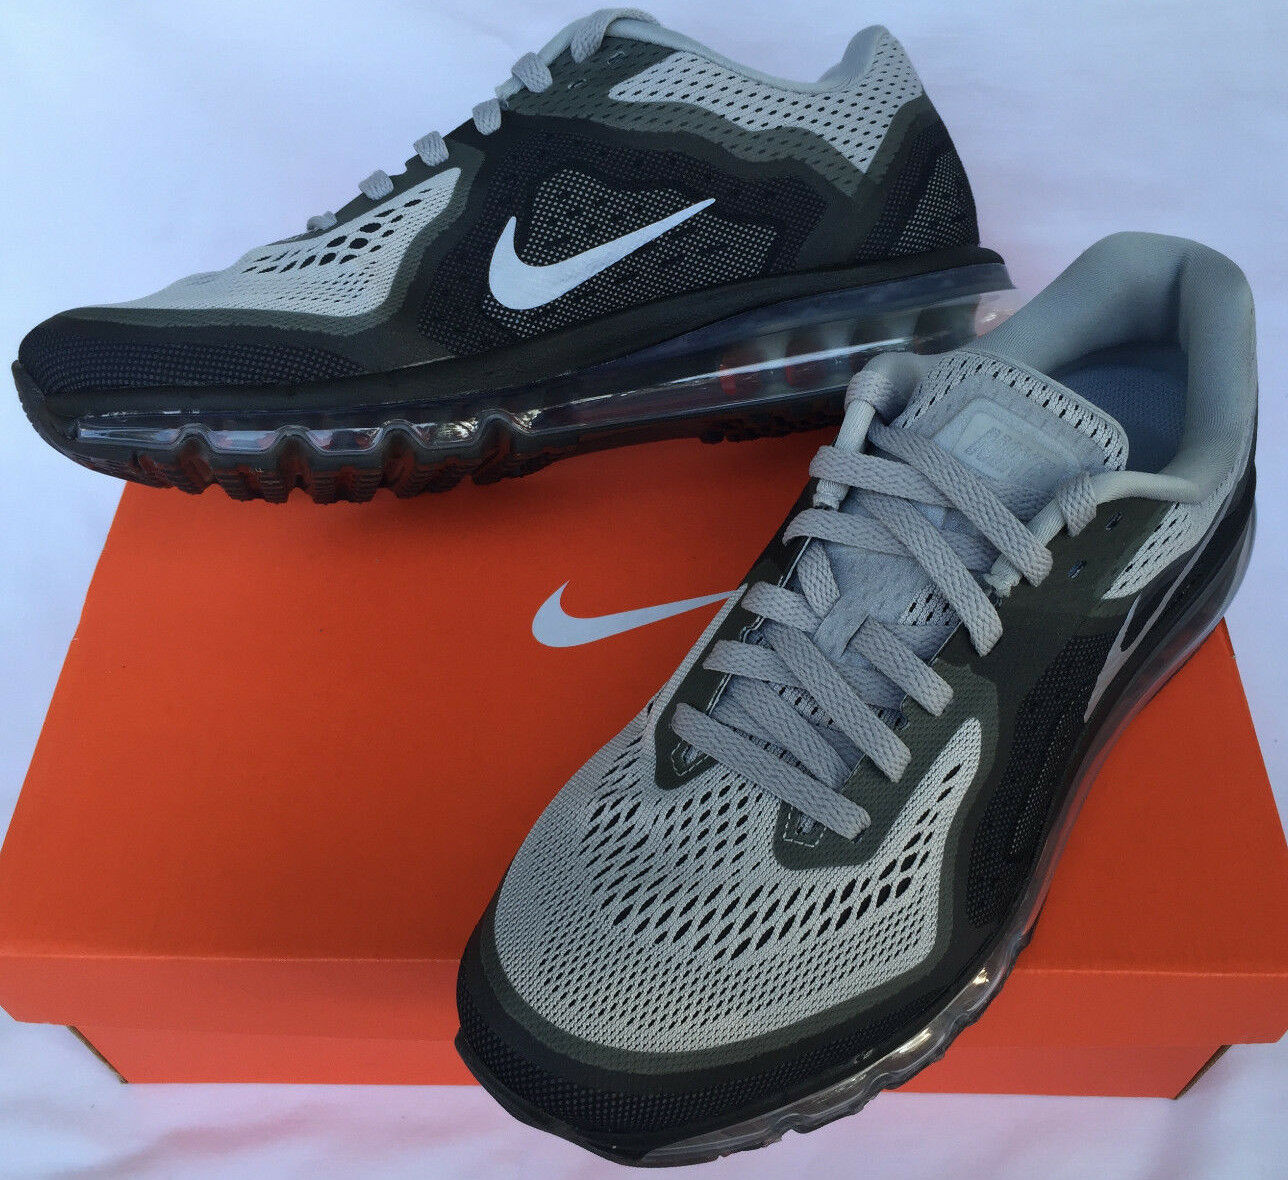 Nike Air Max 2014 Wolf Grey 621077-010 Silver Marathon Running Shoes Uomo 8.5